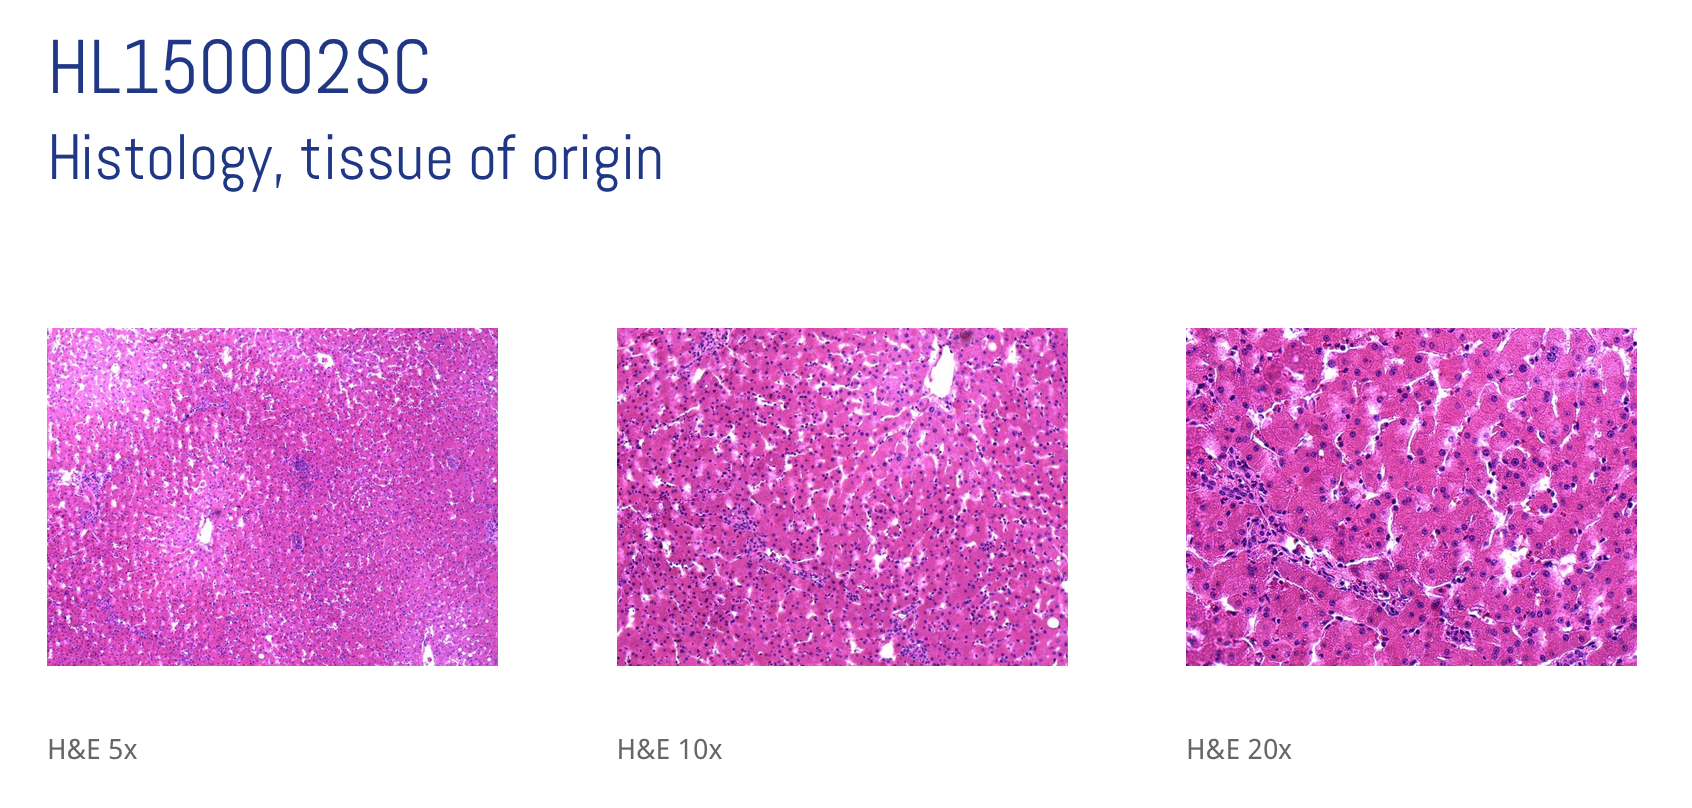 liver cells offered by samsara sciences for 3D bioprinting